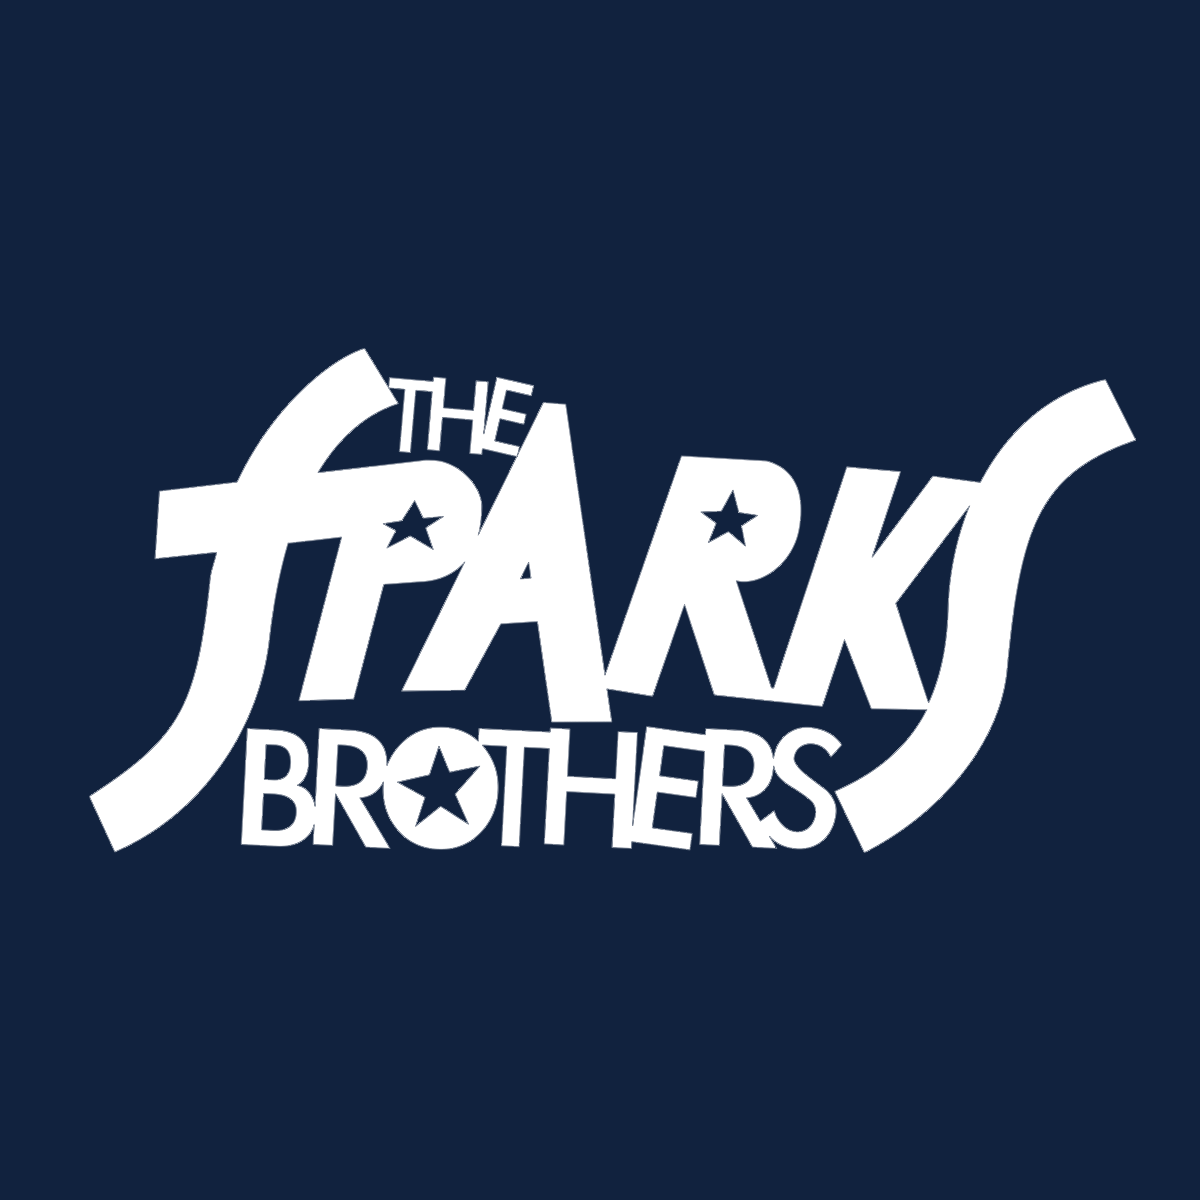 The sparks brothers 2021 text title image